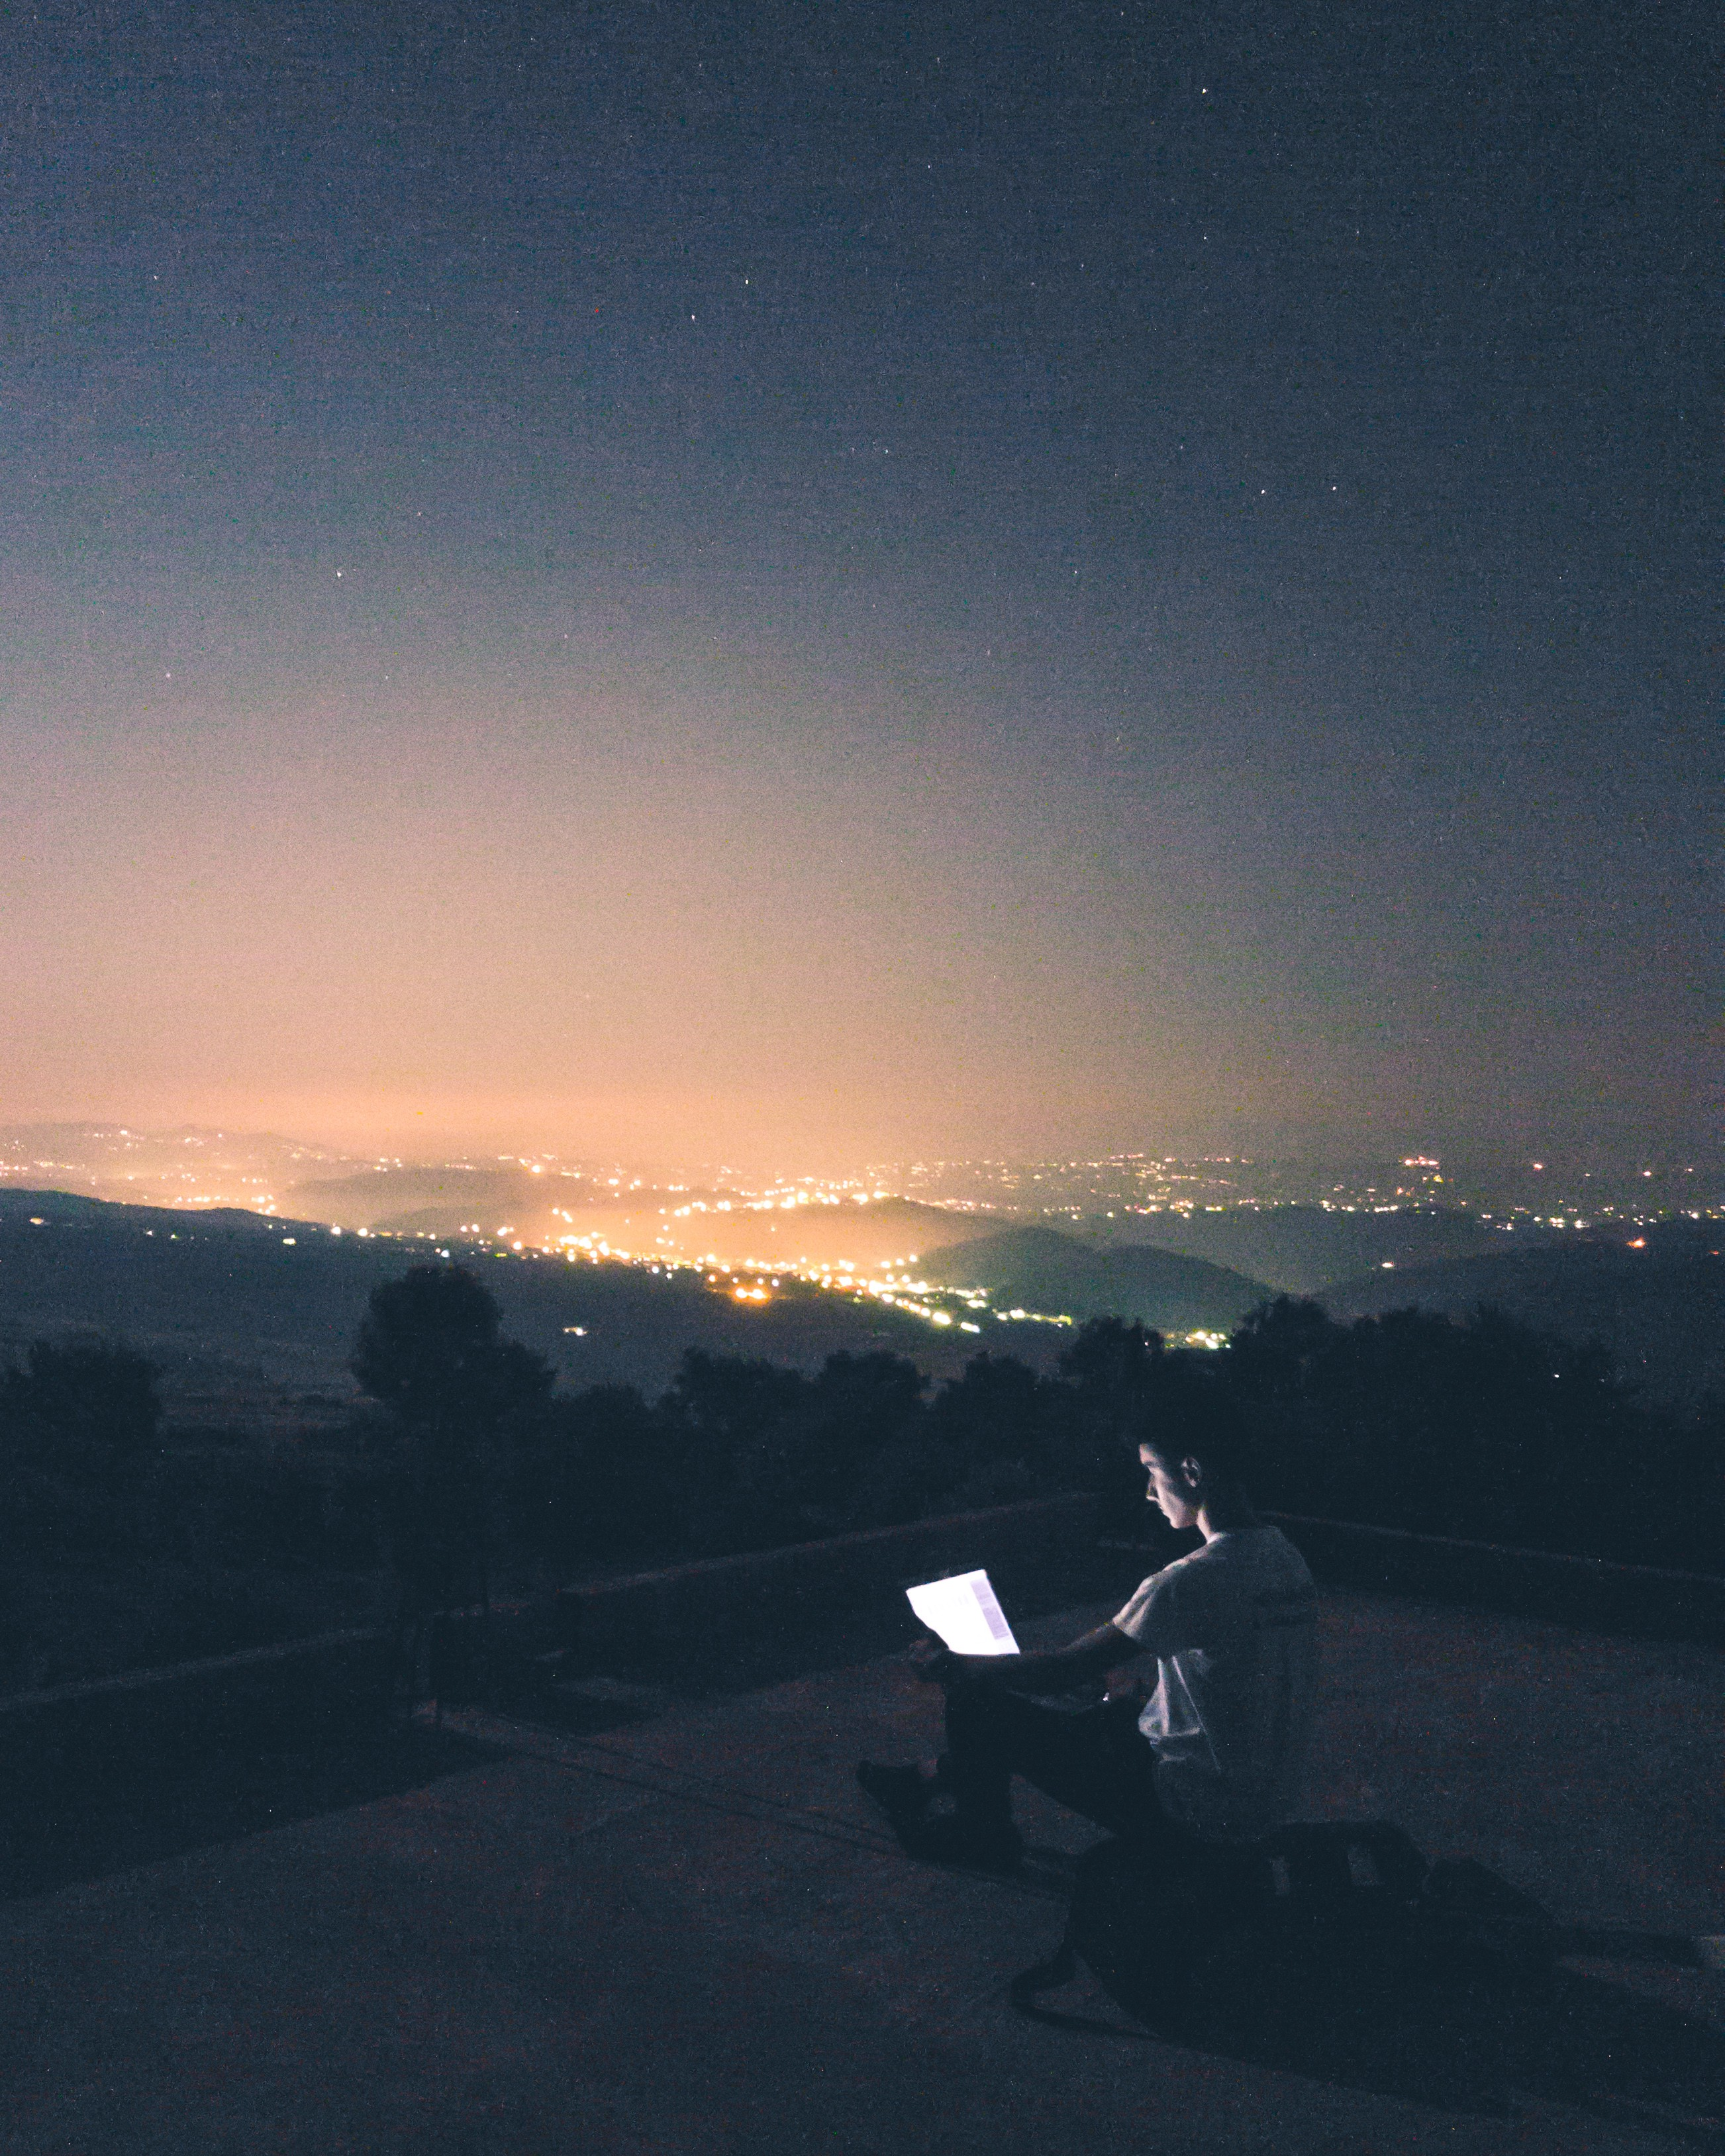 Young white male sitting on a lonely hill with a laptop at night. City lights glare in the far distance.